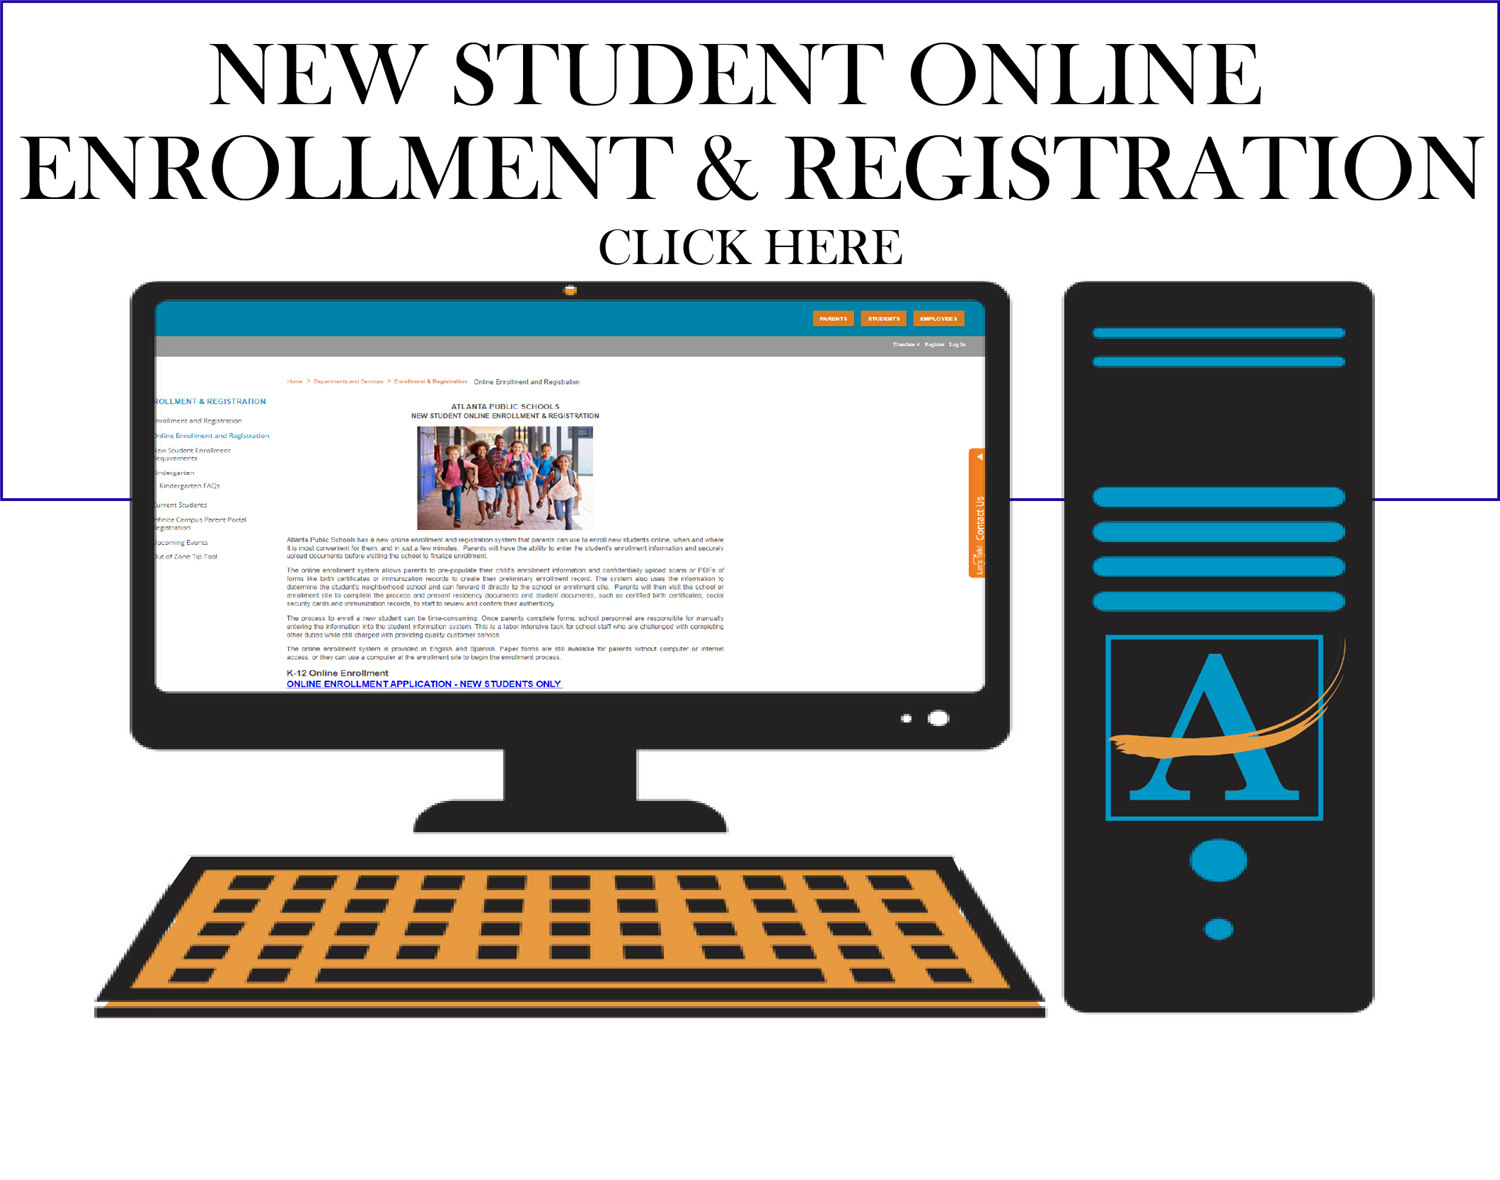 Registration & Enrollment